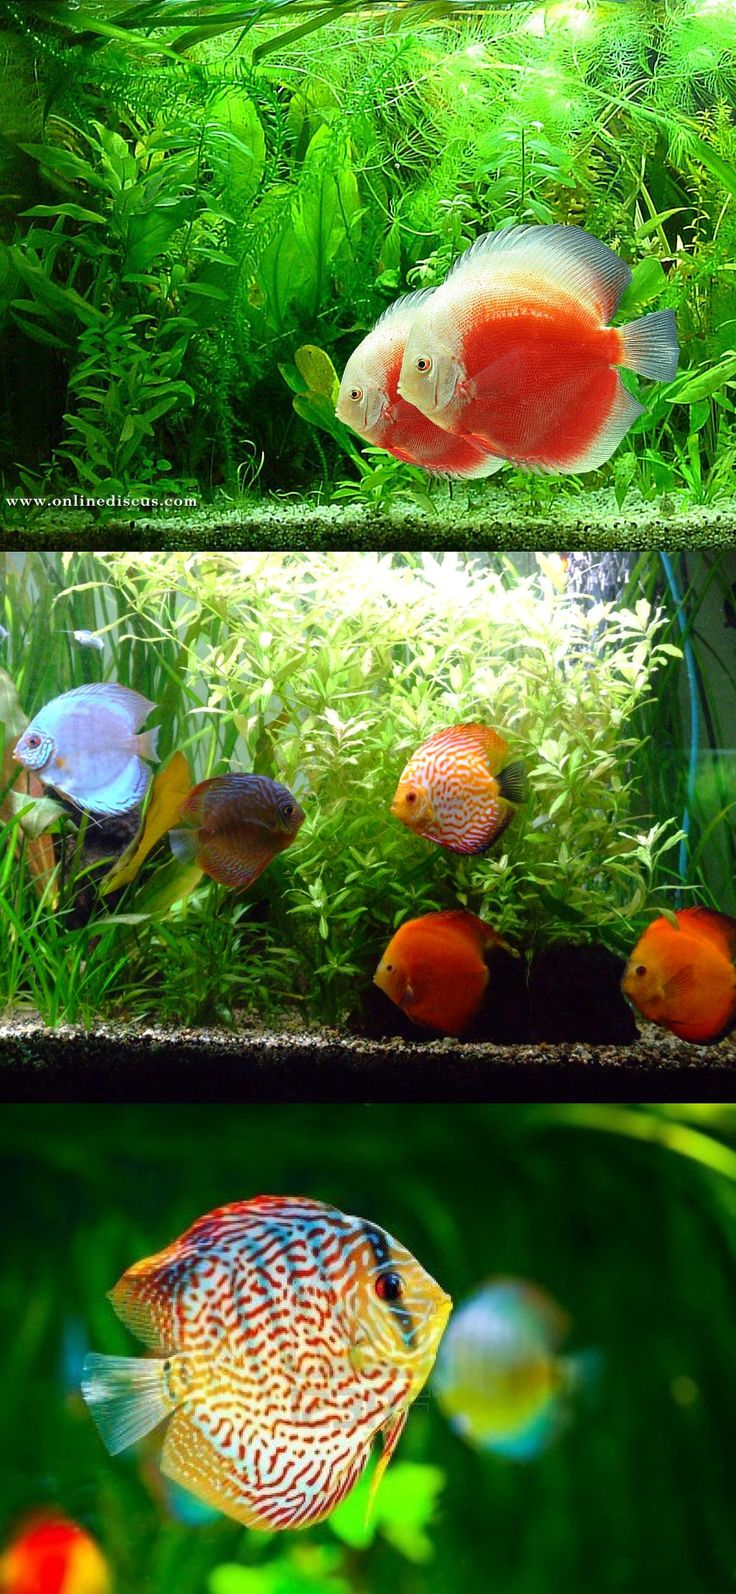 Fish aquarium online delhi - Discus Fish